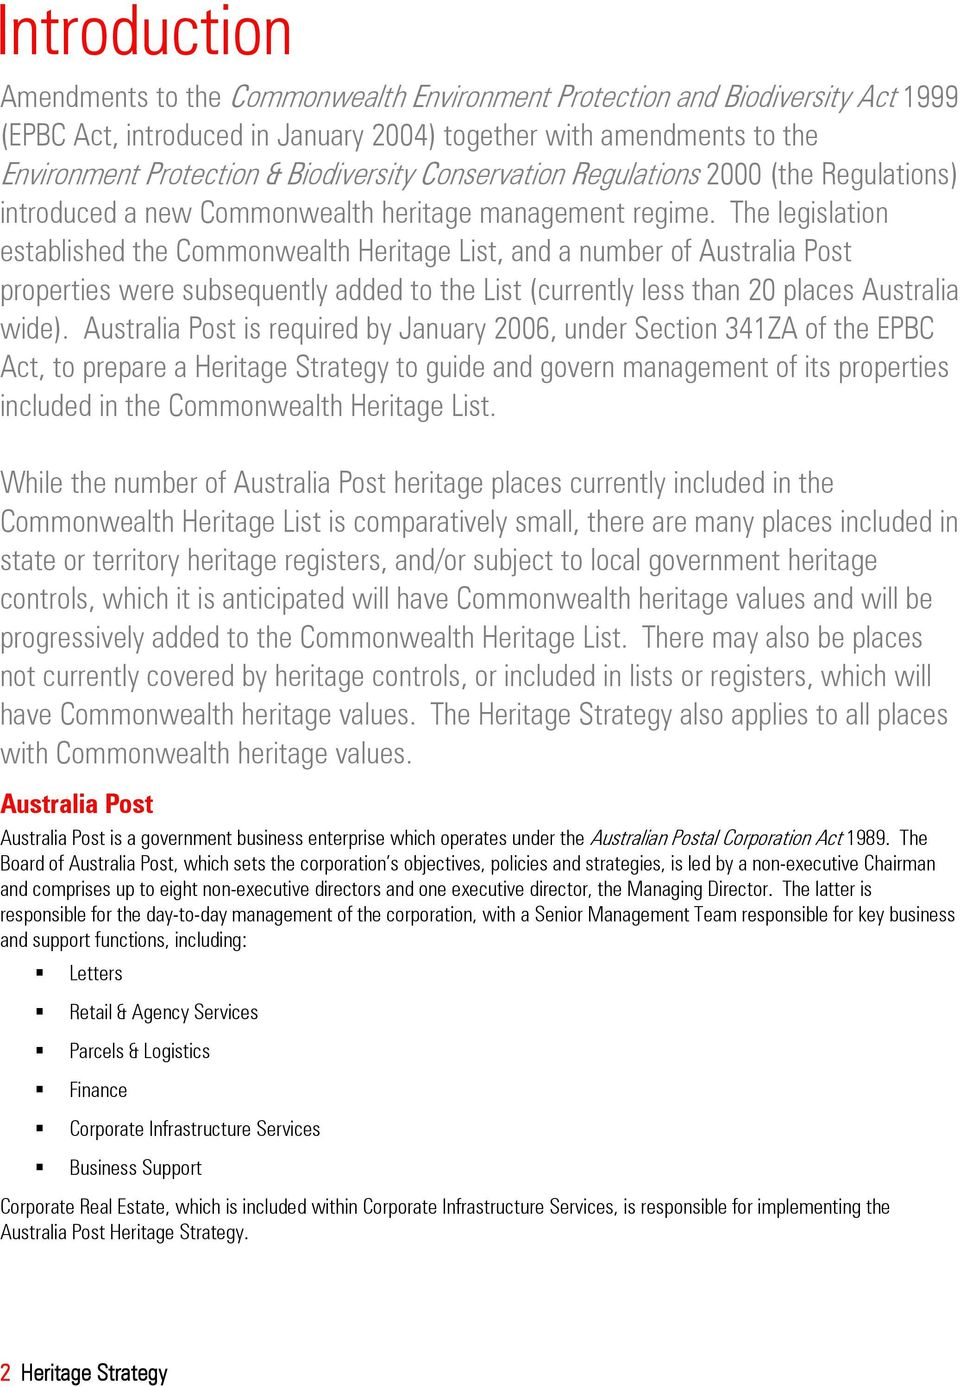 The legislation established the Commonwealth Heritage List, and a number of Australia Post properties were subsequently added to the List (currently less than 20 places Australia wide).